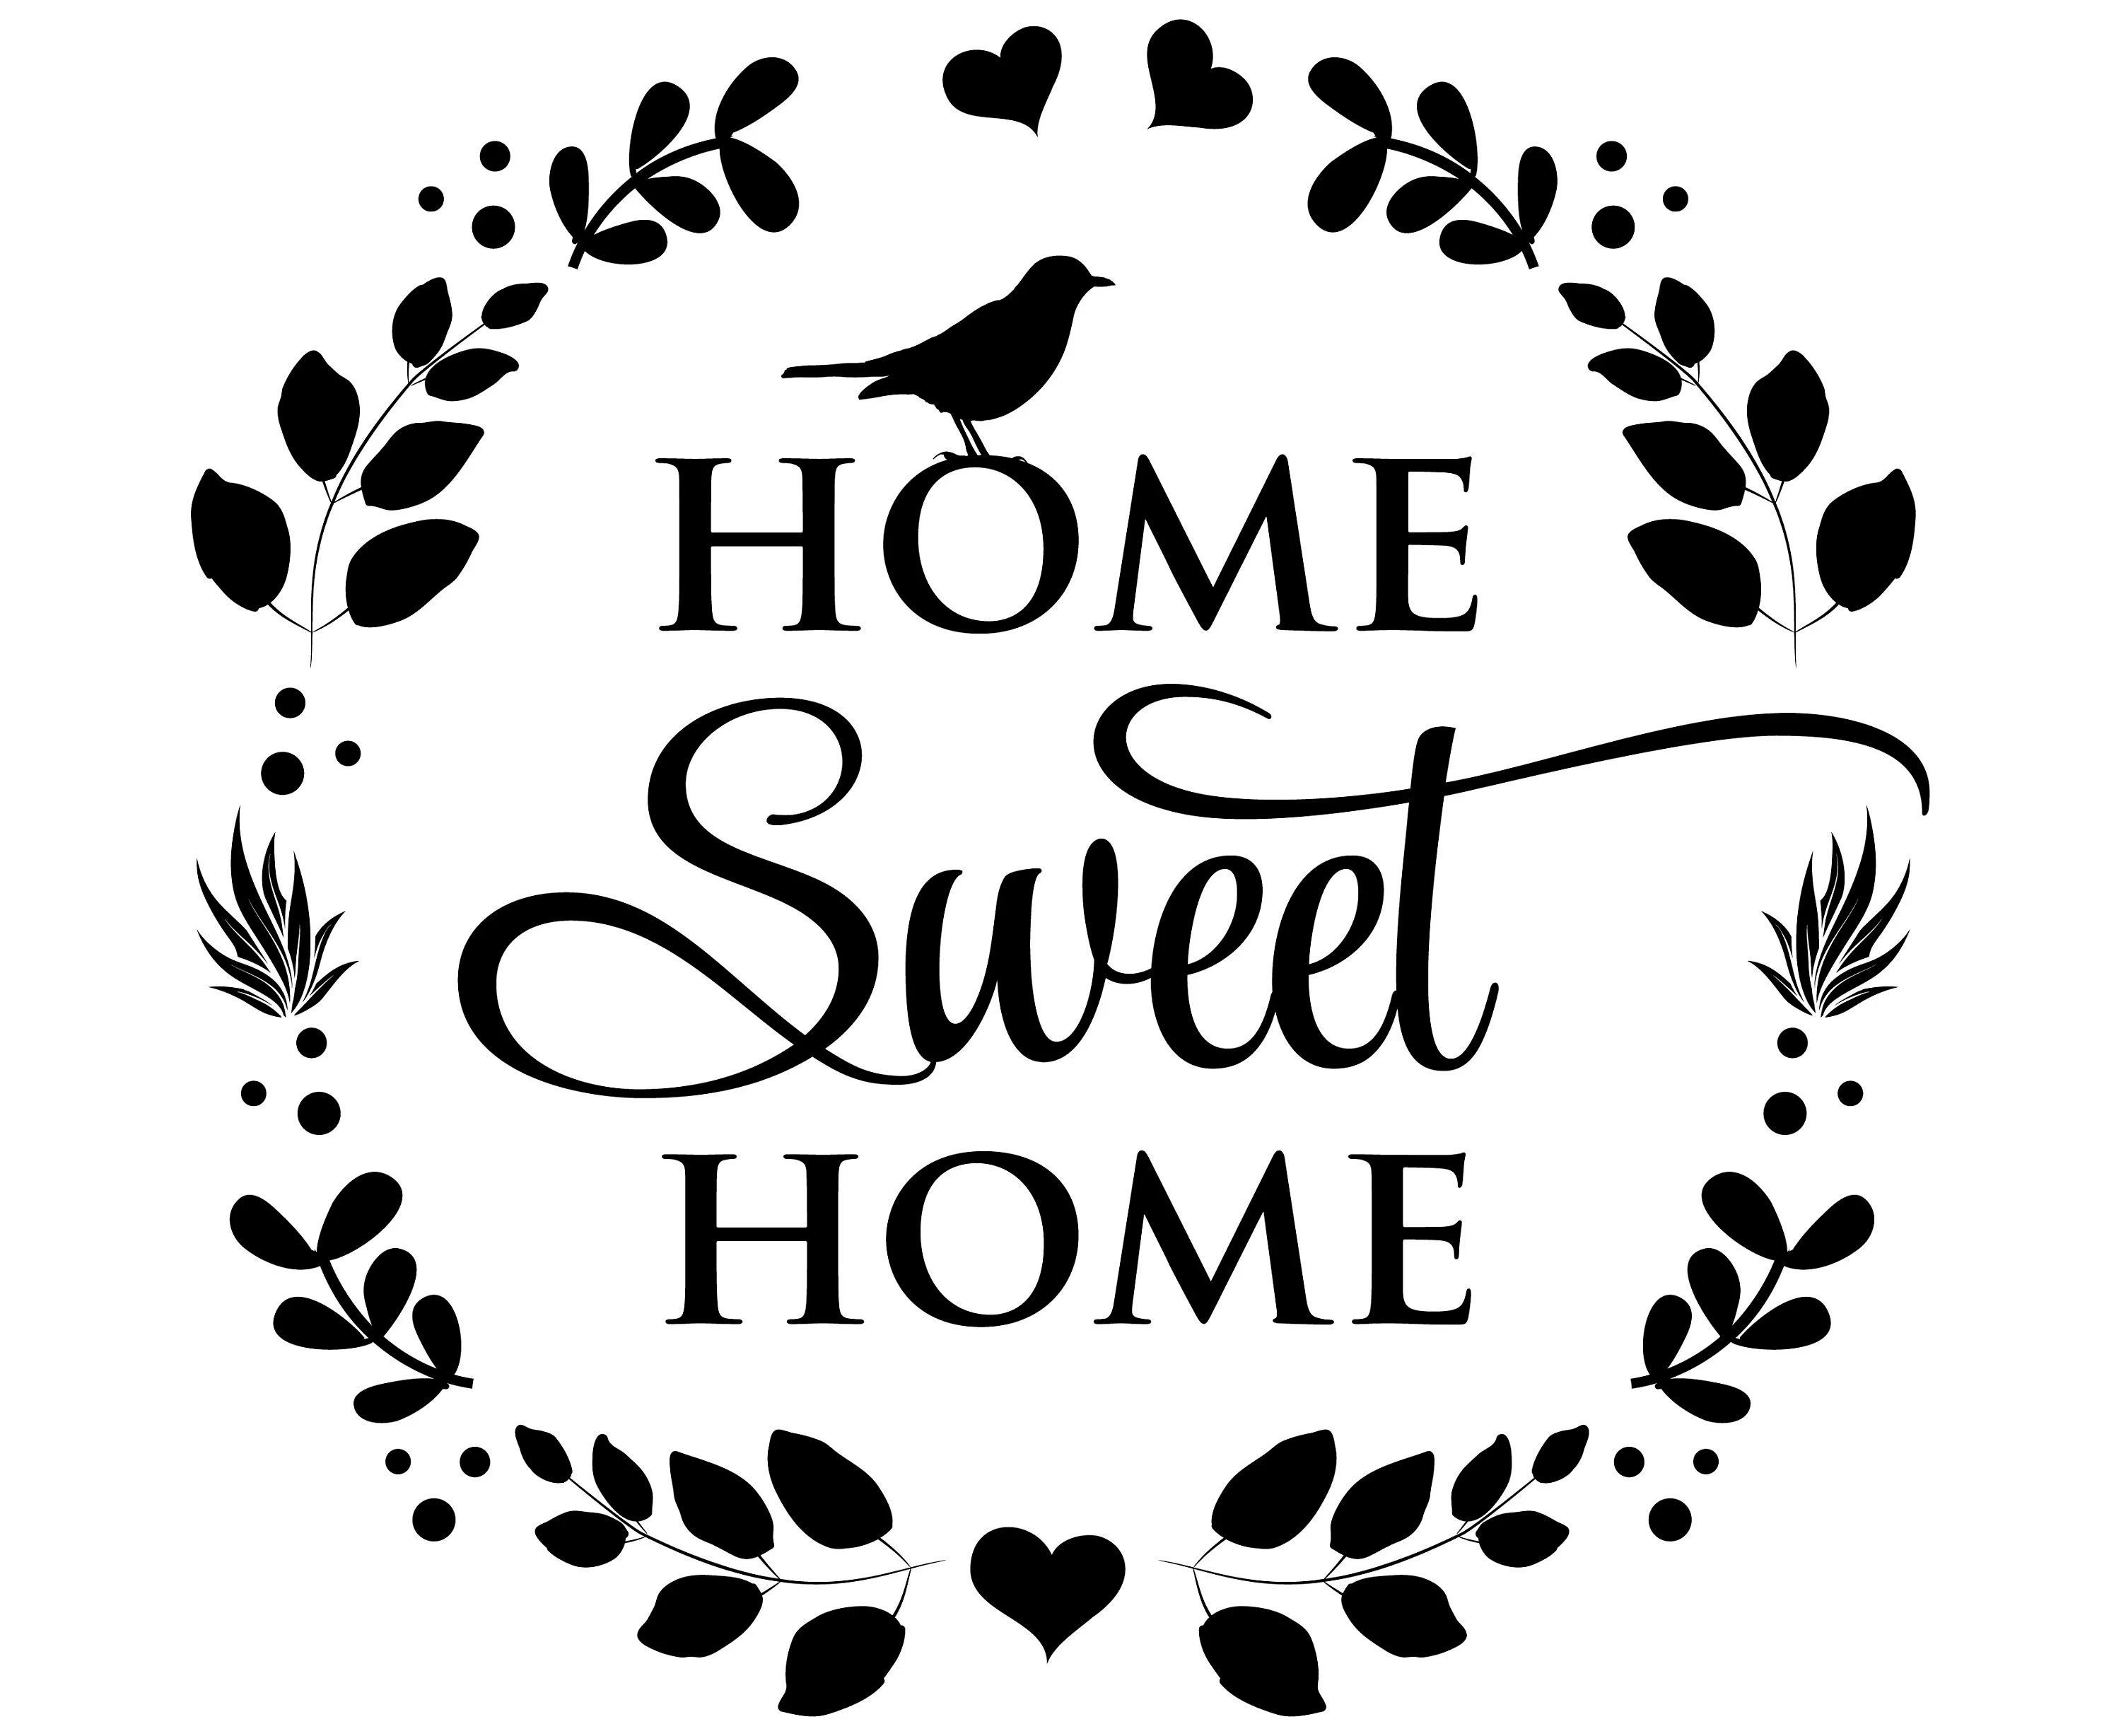 Home Sweet Home Svg Home Svg Quotes Home Quote Svgsvg